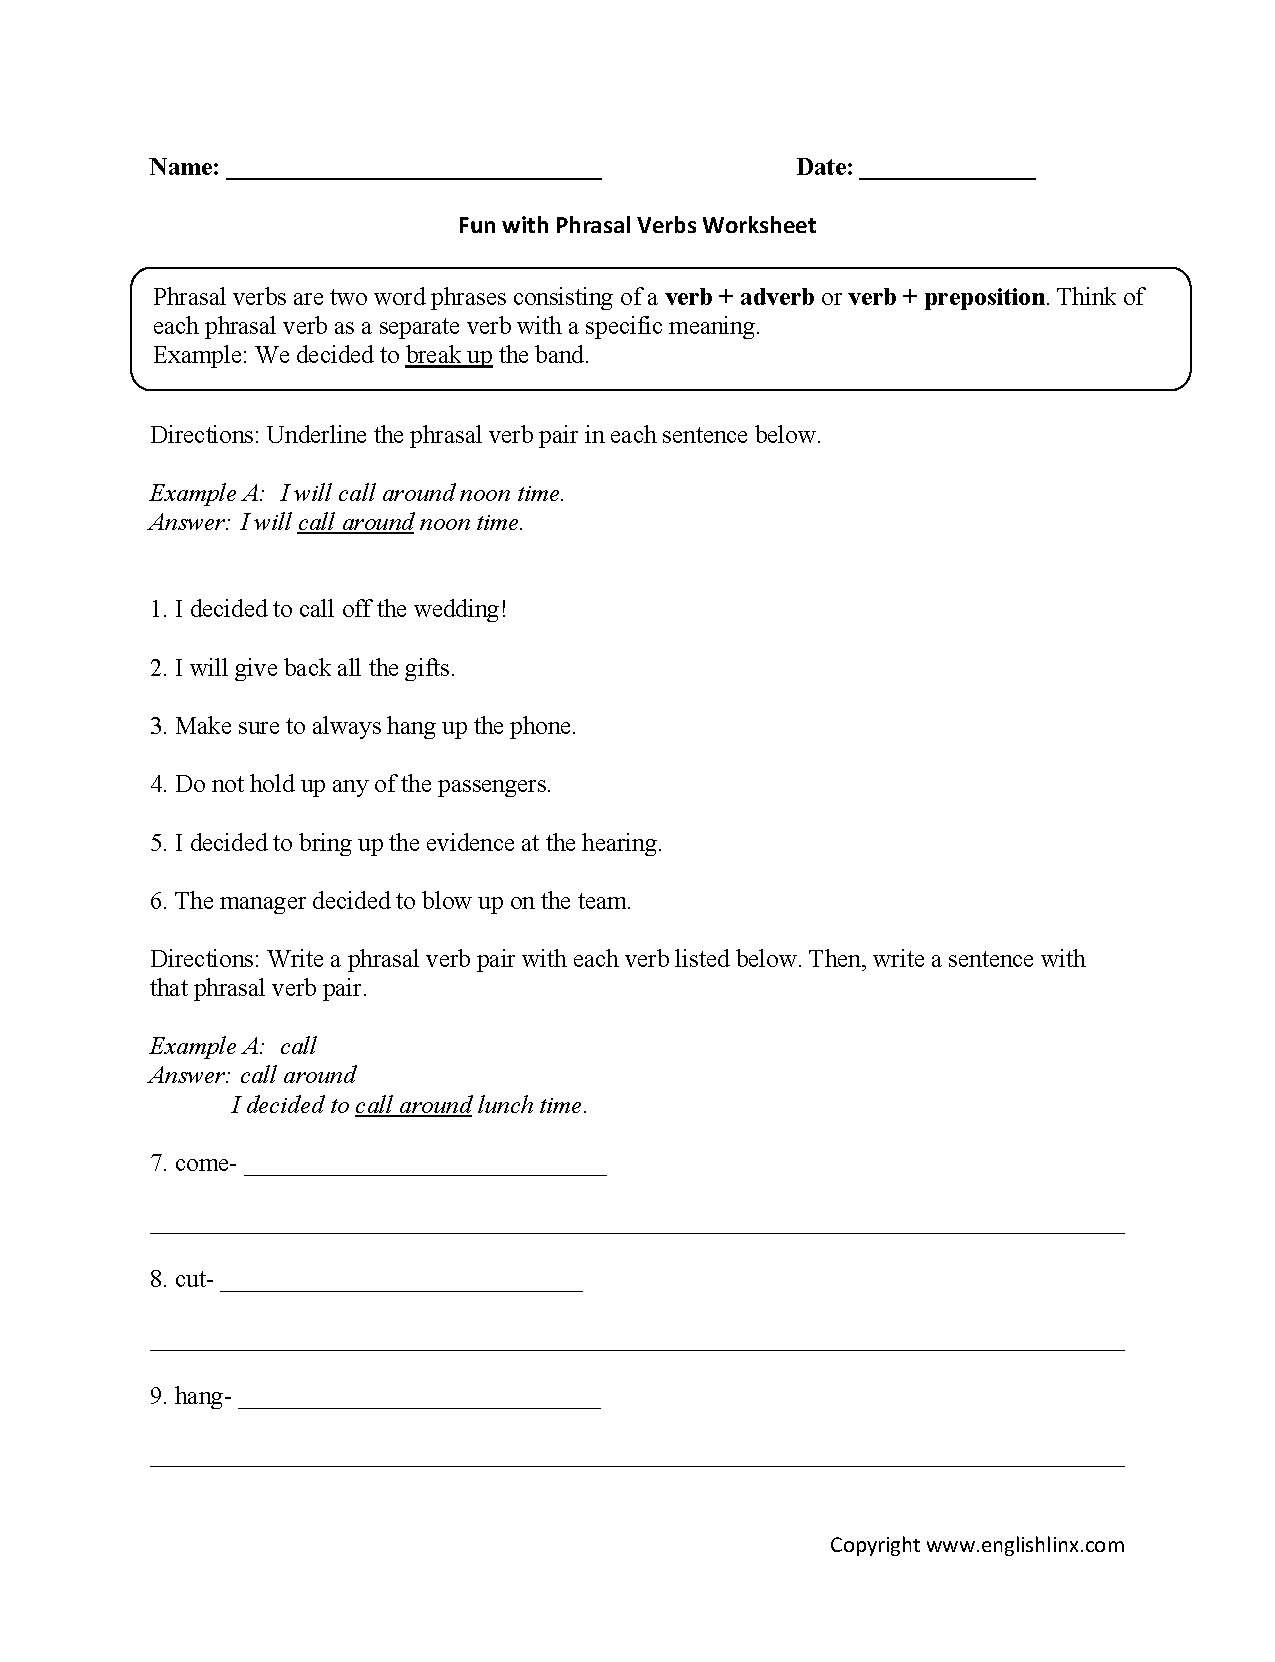 Fun With Phrasal Verbs Worksheet